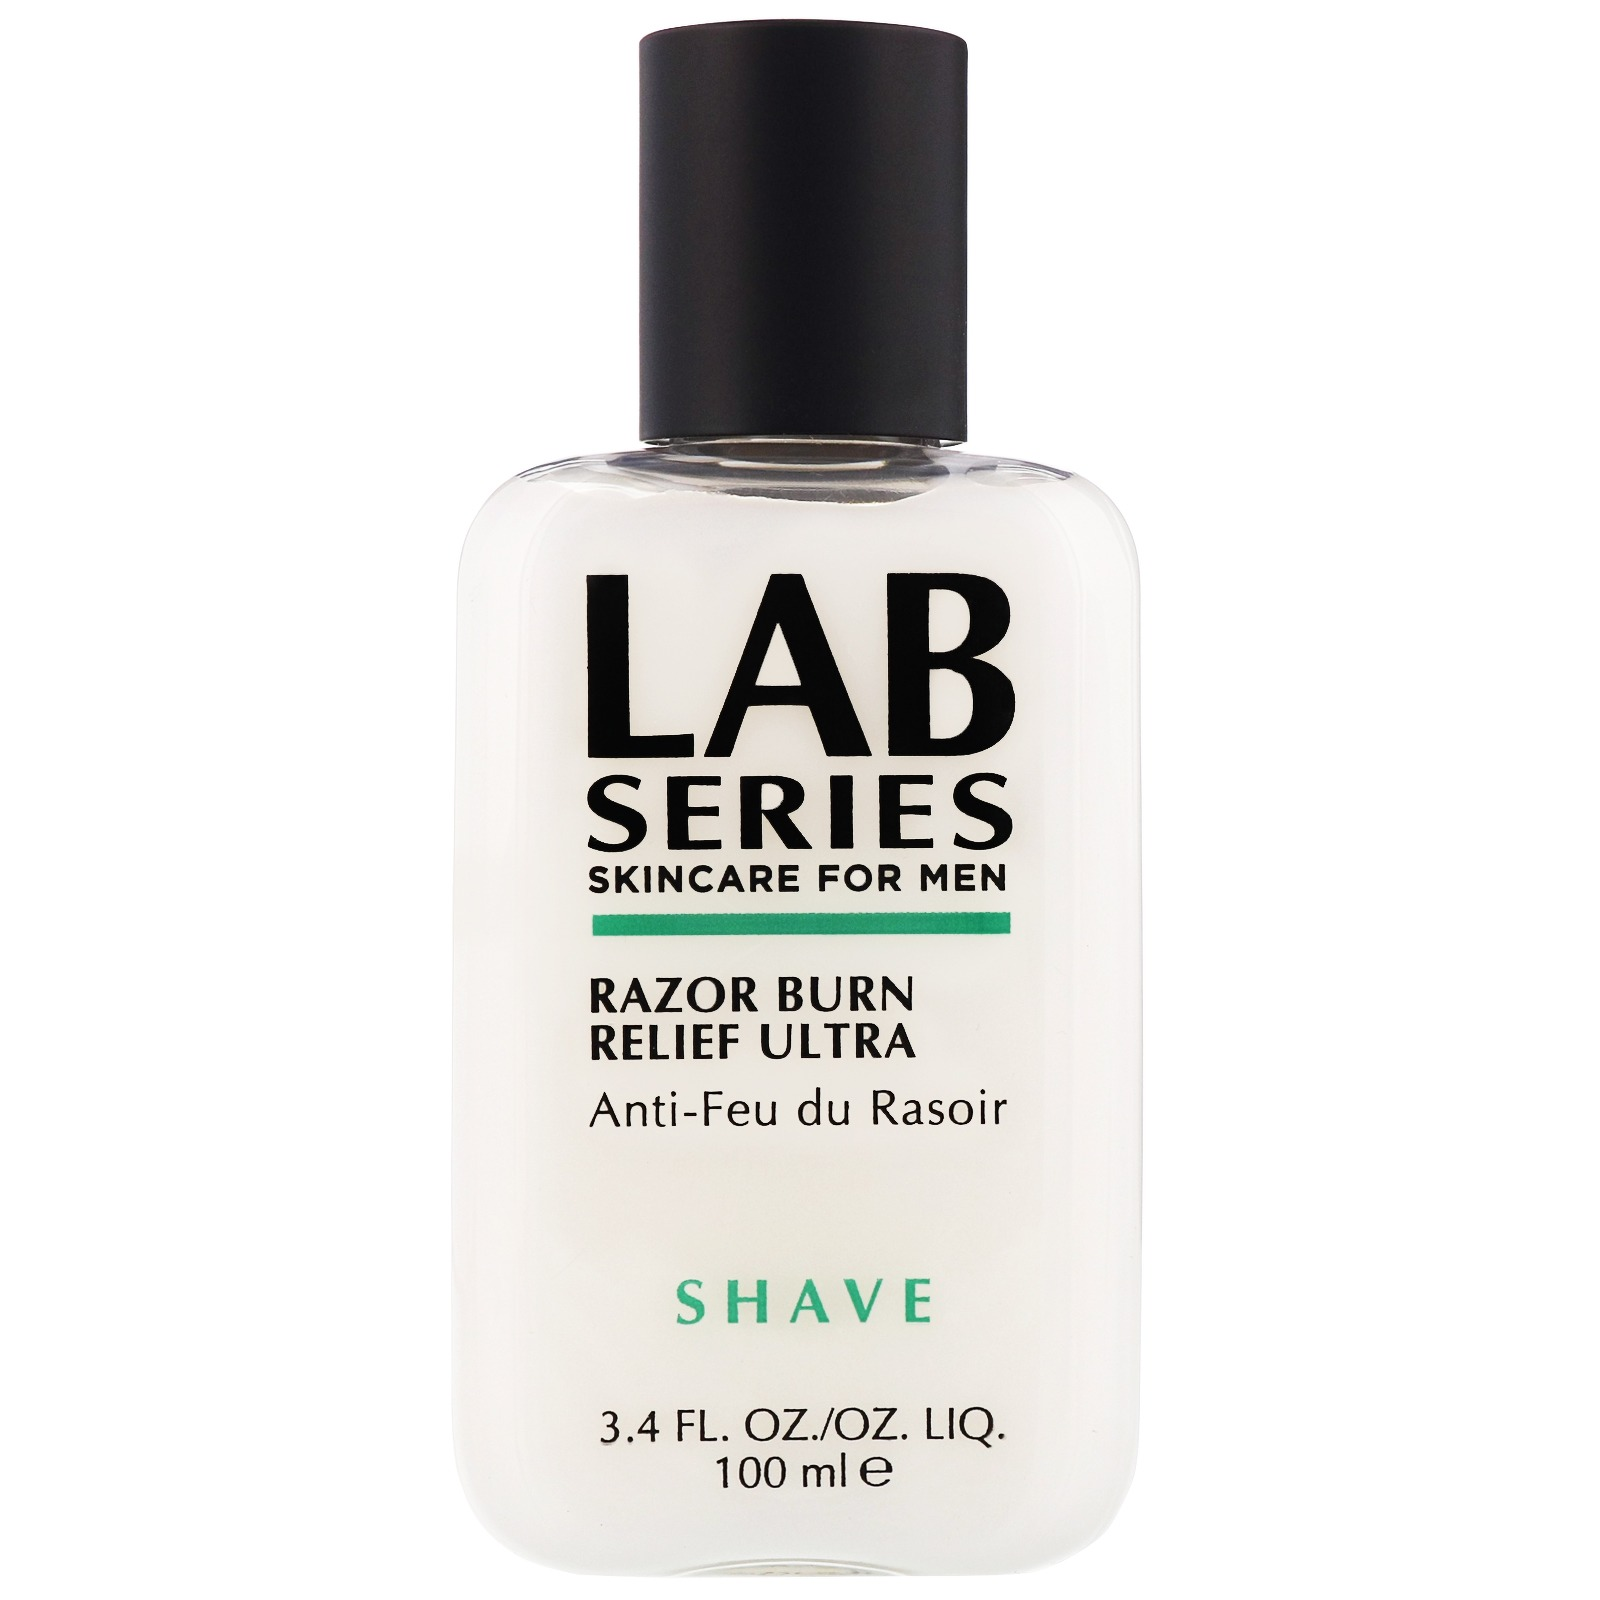 LAB SERIES SHAVE Razor Burn Relief Ultra Fragrance Free 100ml